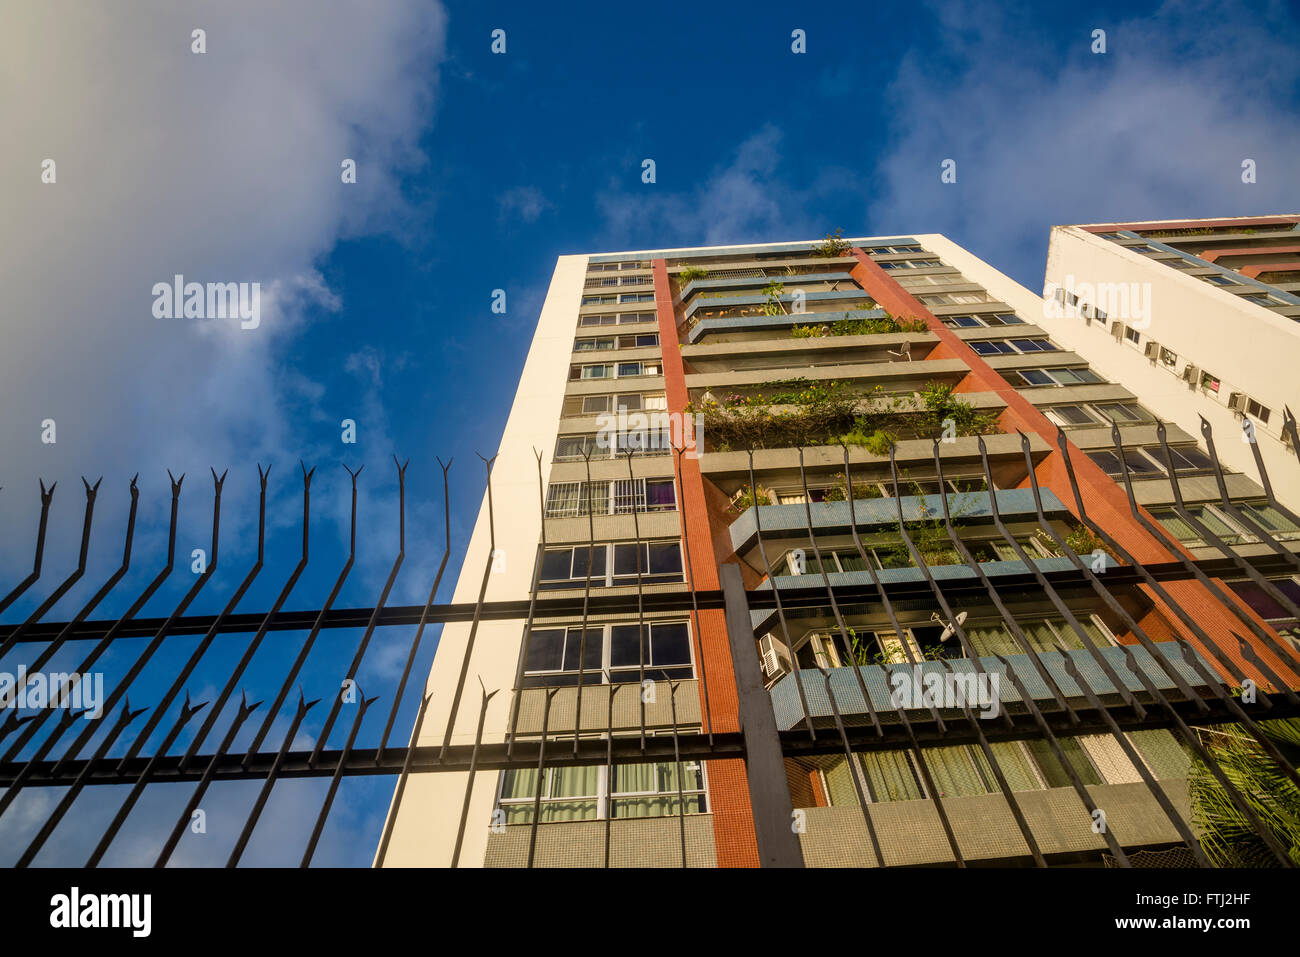 Upmarket residential tower block protected by high fence, Salvador, Bahia, Brazil - Stock Image